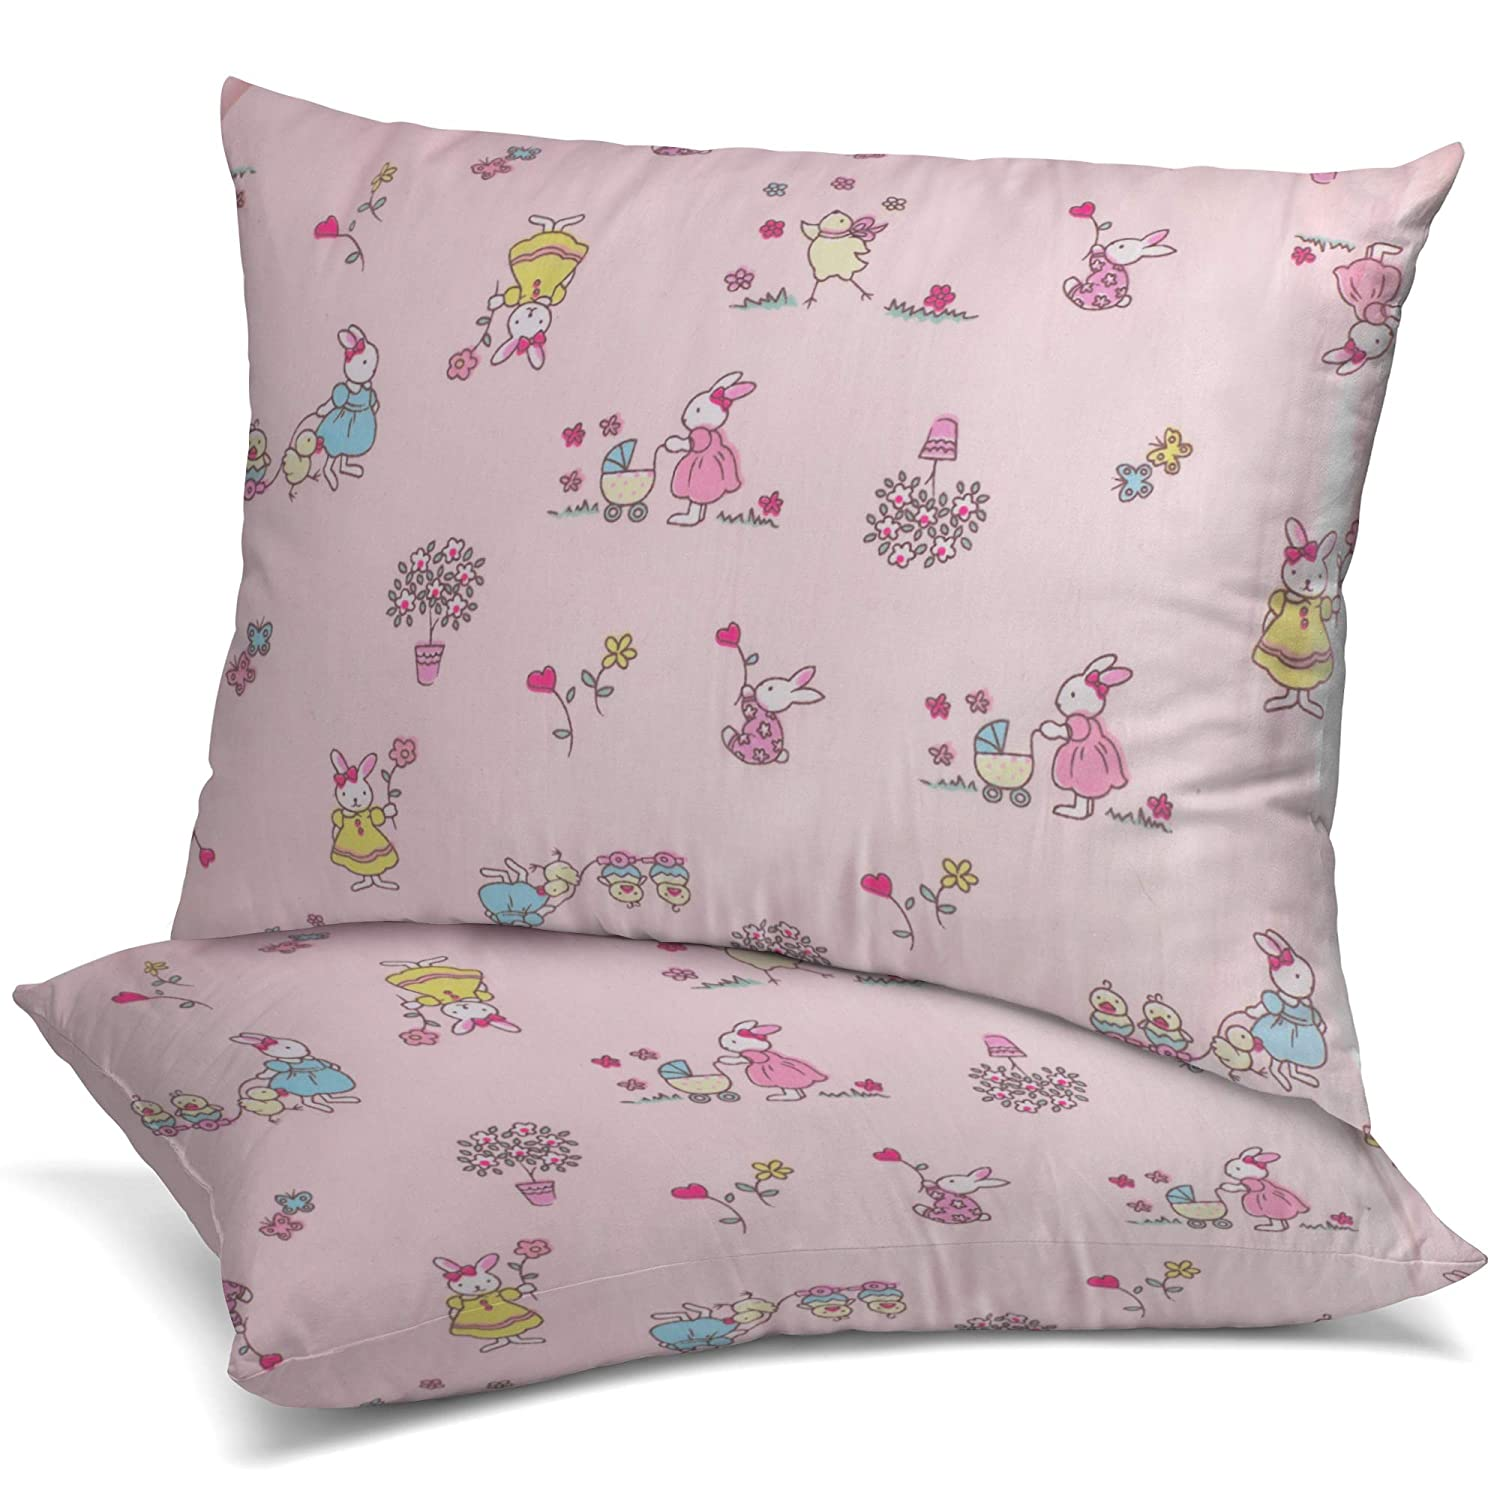 Celeep [2-Pack] Baby Toddler Pillow Set - 13 x 18 Inches Toddler Bedding Small Pillow - Baby Pillow with 100% Cotton Cover (2-Pack Set w/Pink Pillowcases)